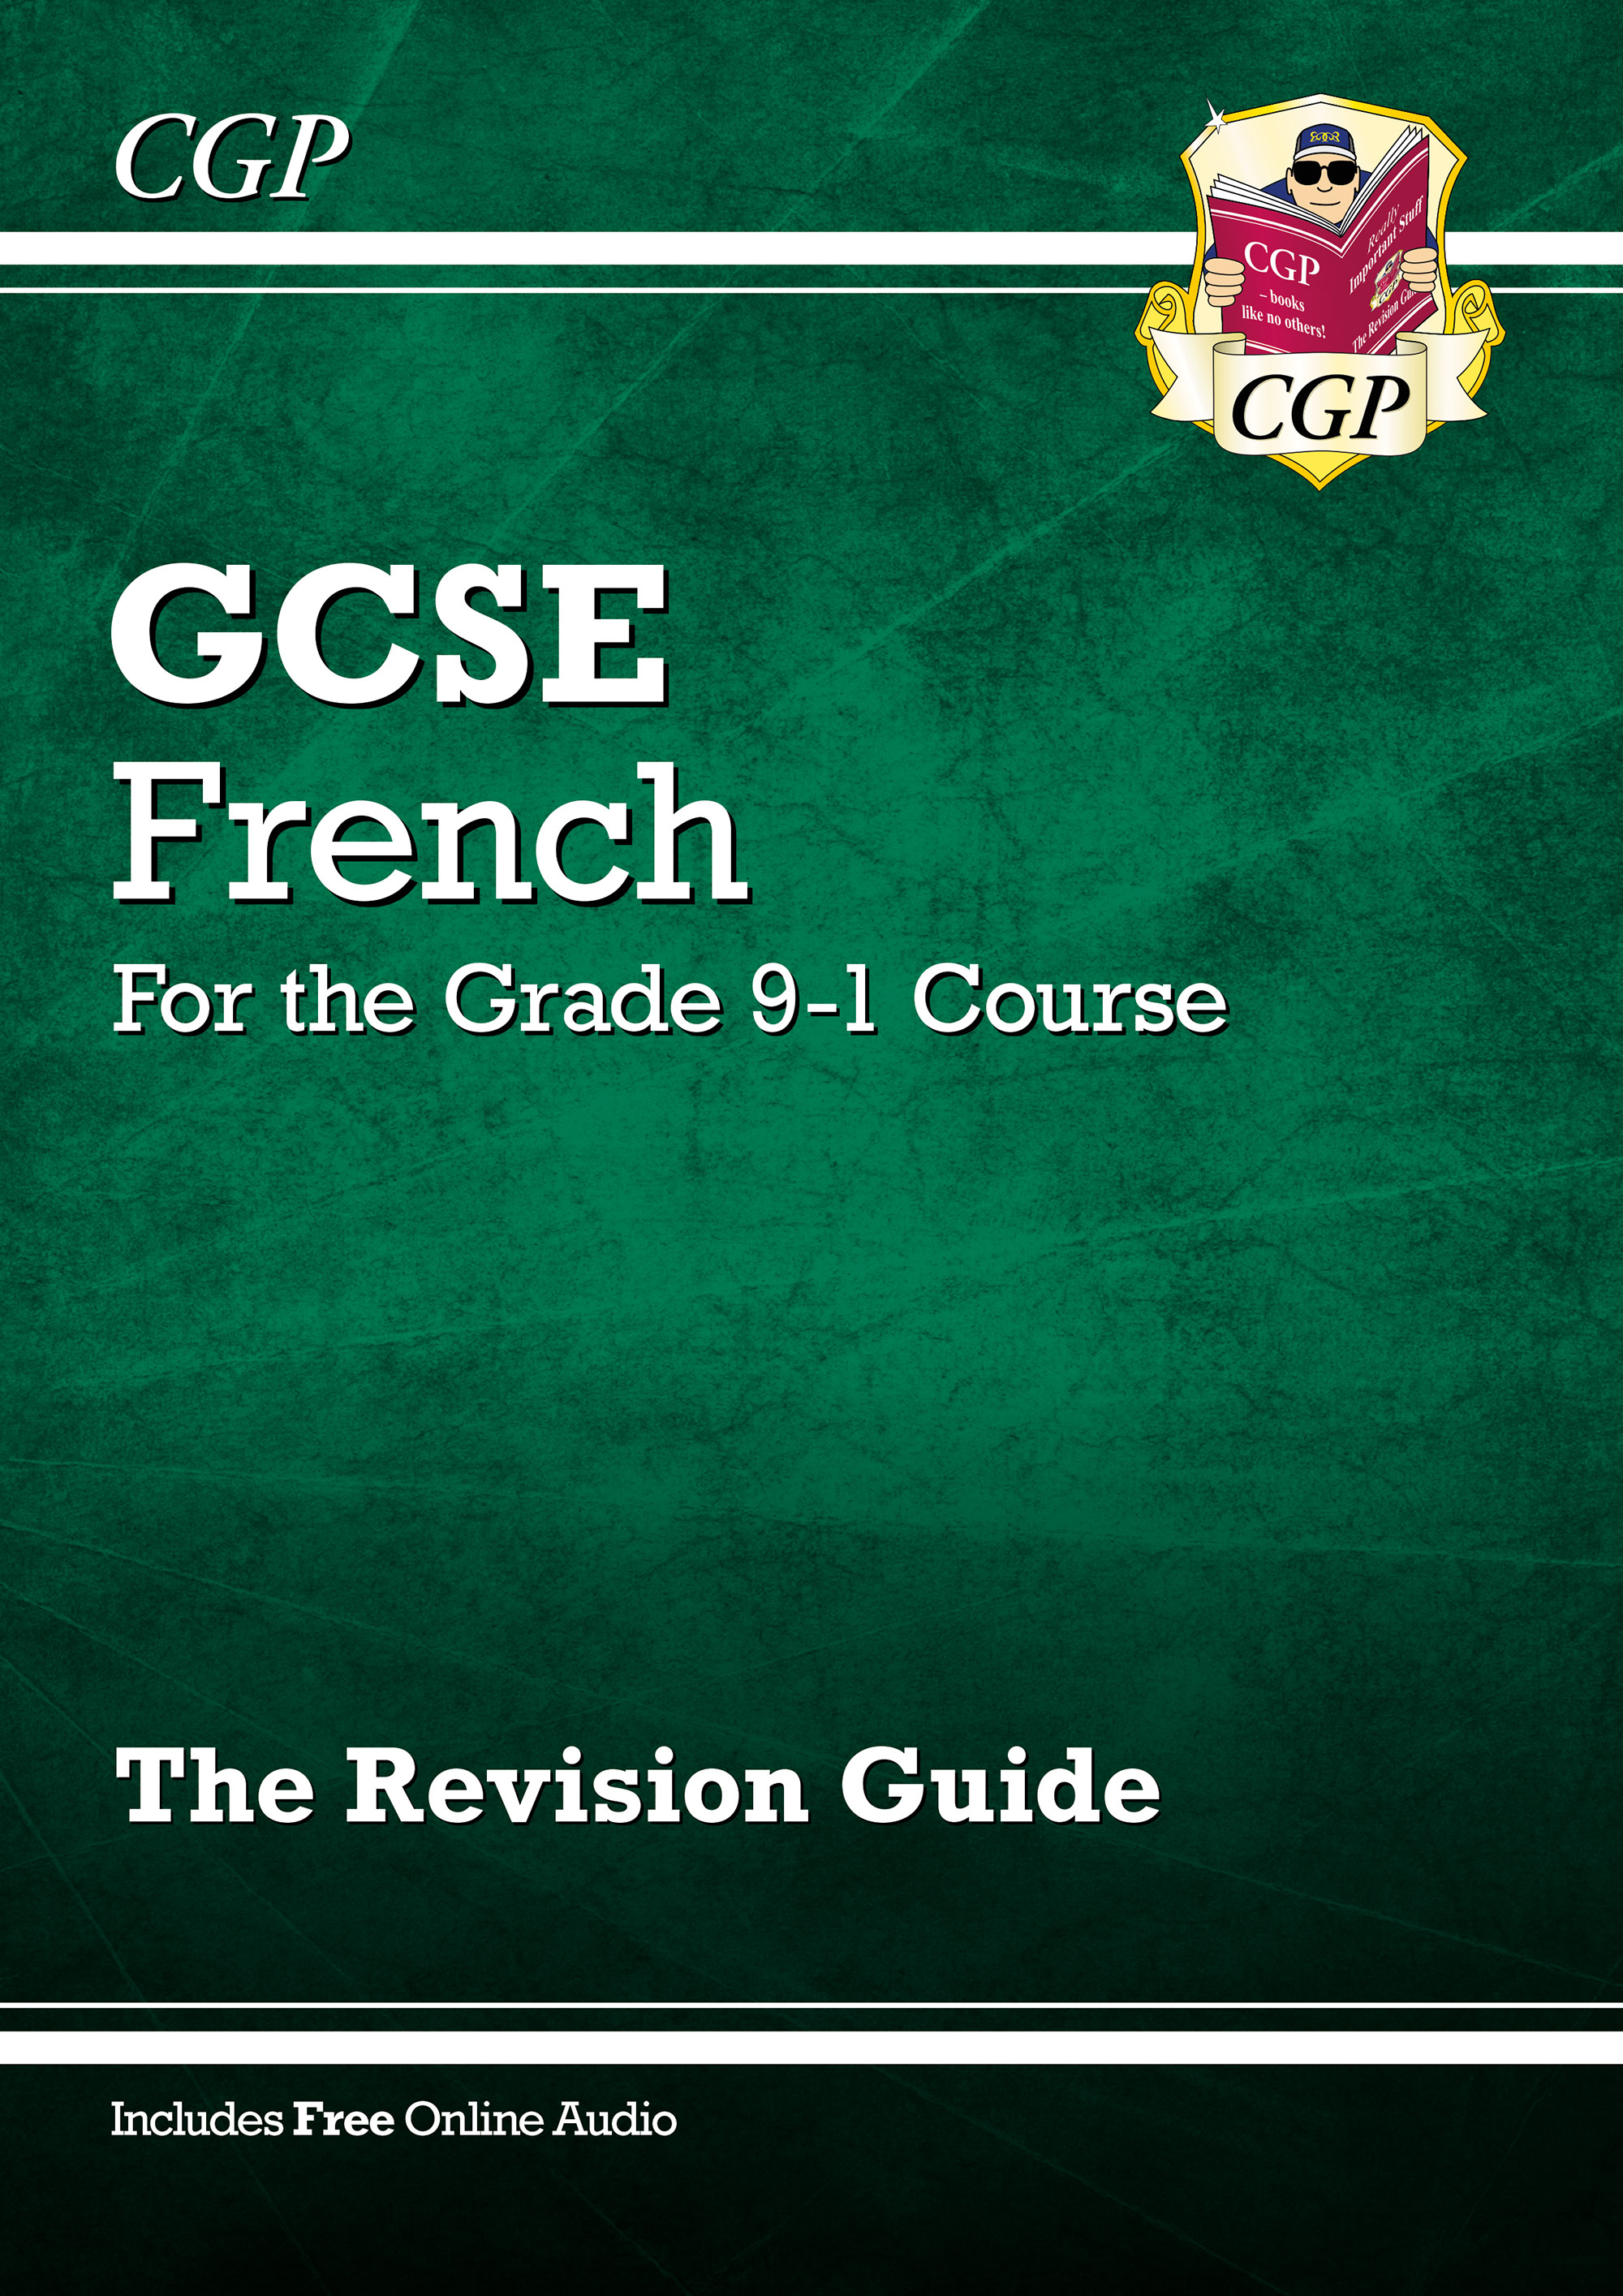 FHR44DK - New GCSE French Revision Guide - for the Grade 9-1 Course